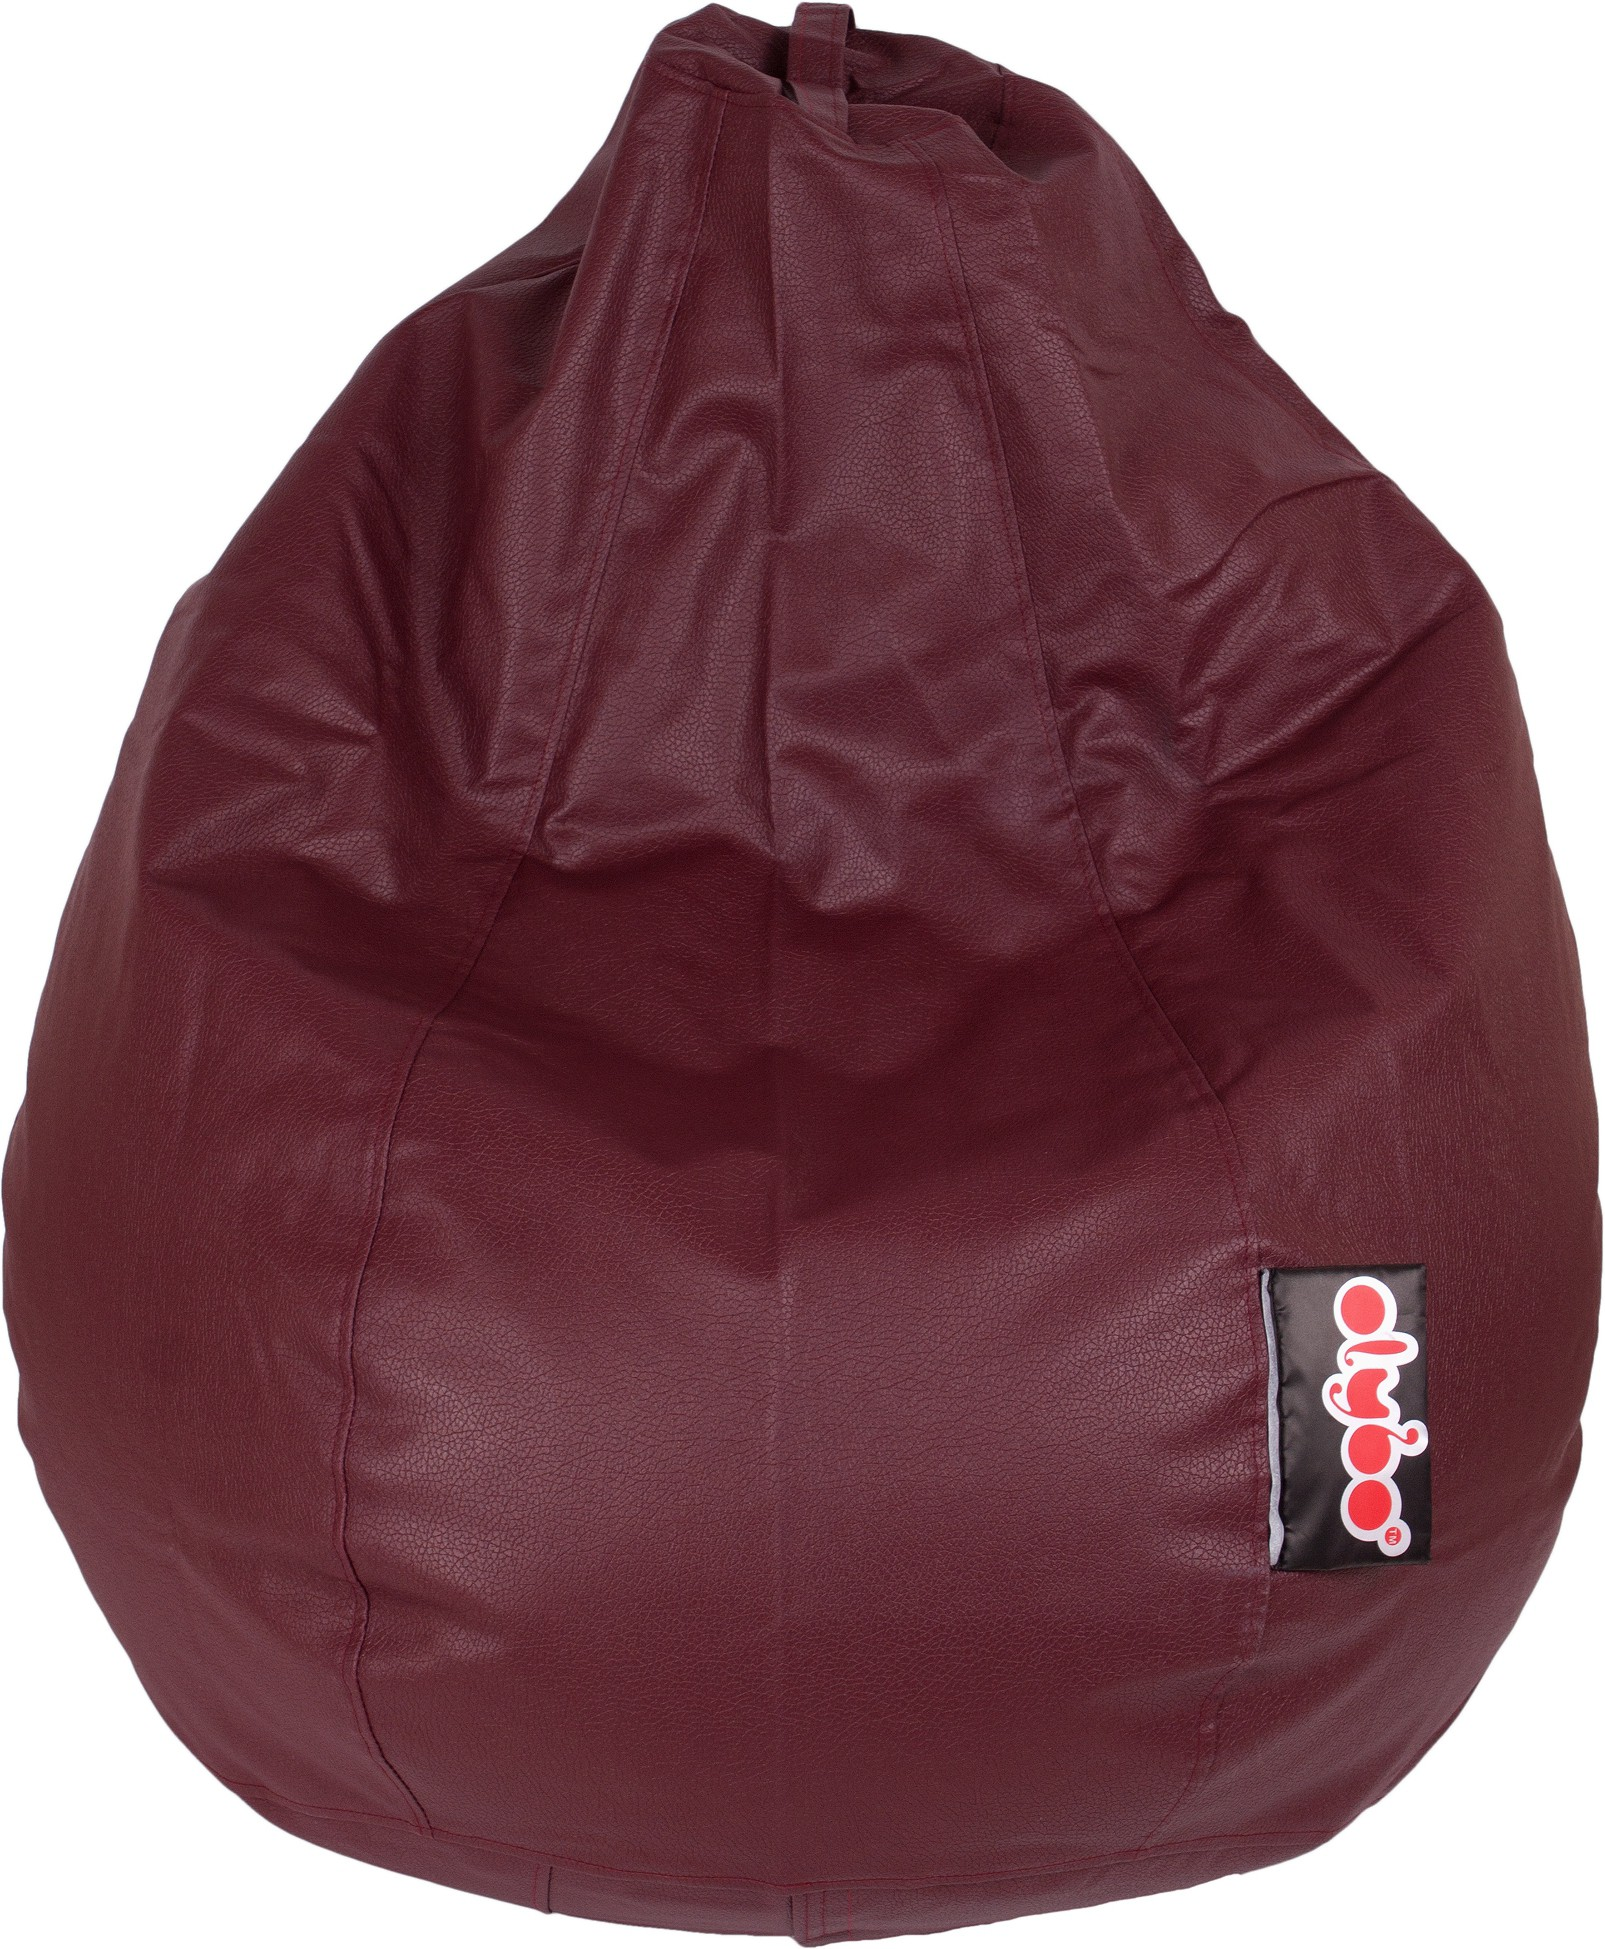 View Olybo XXL Bean Bag Cover(Maroon) Furniture (Olybo)